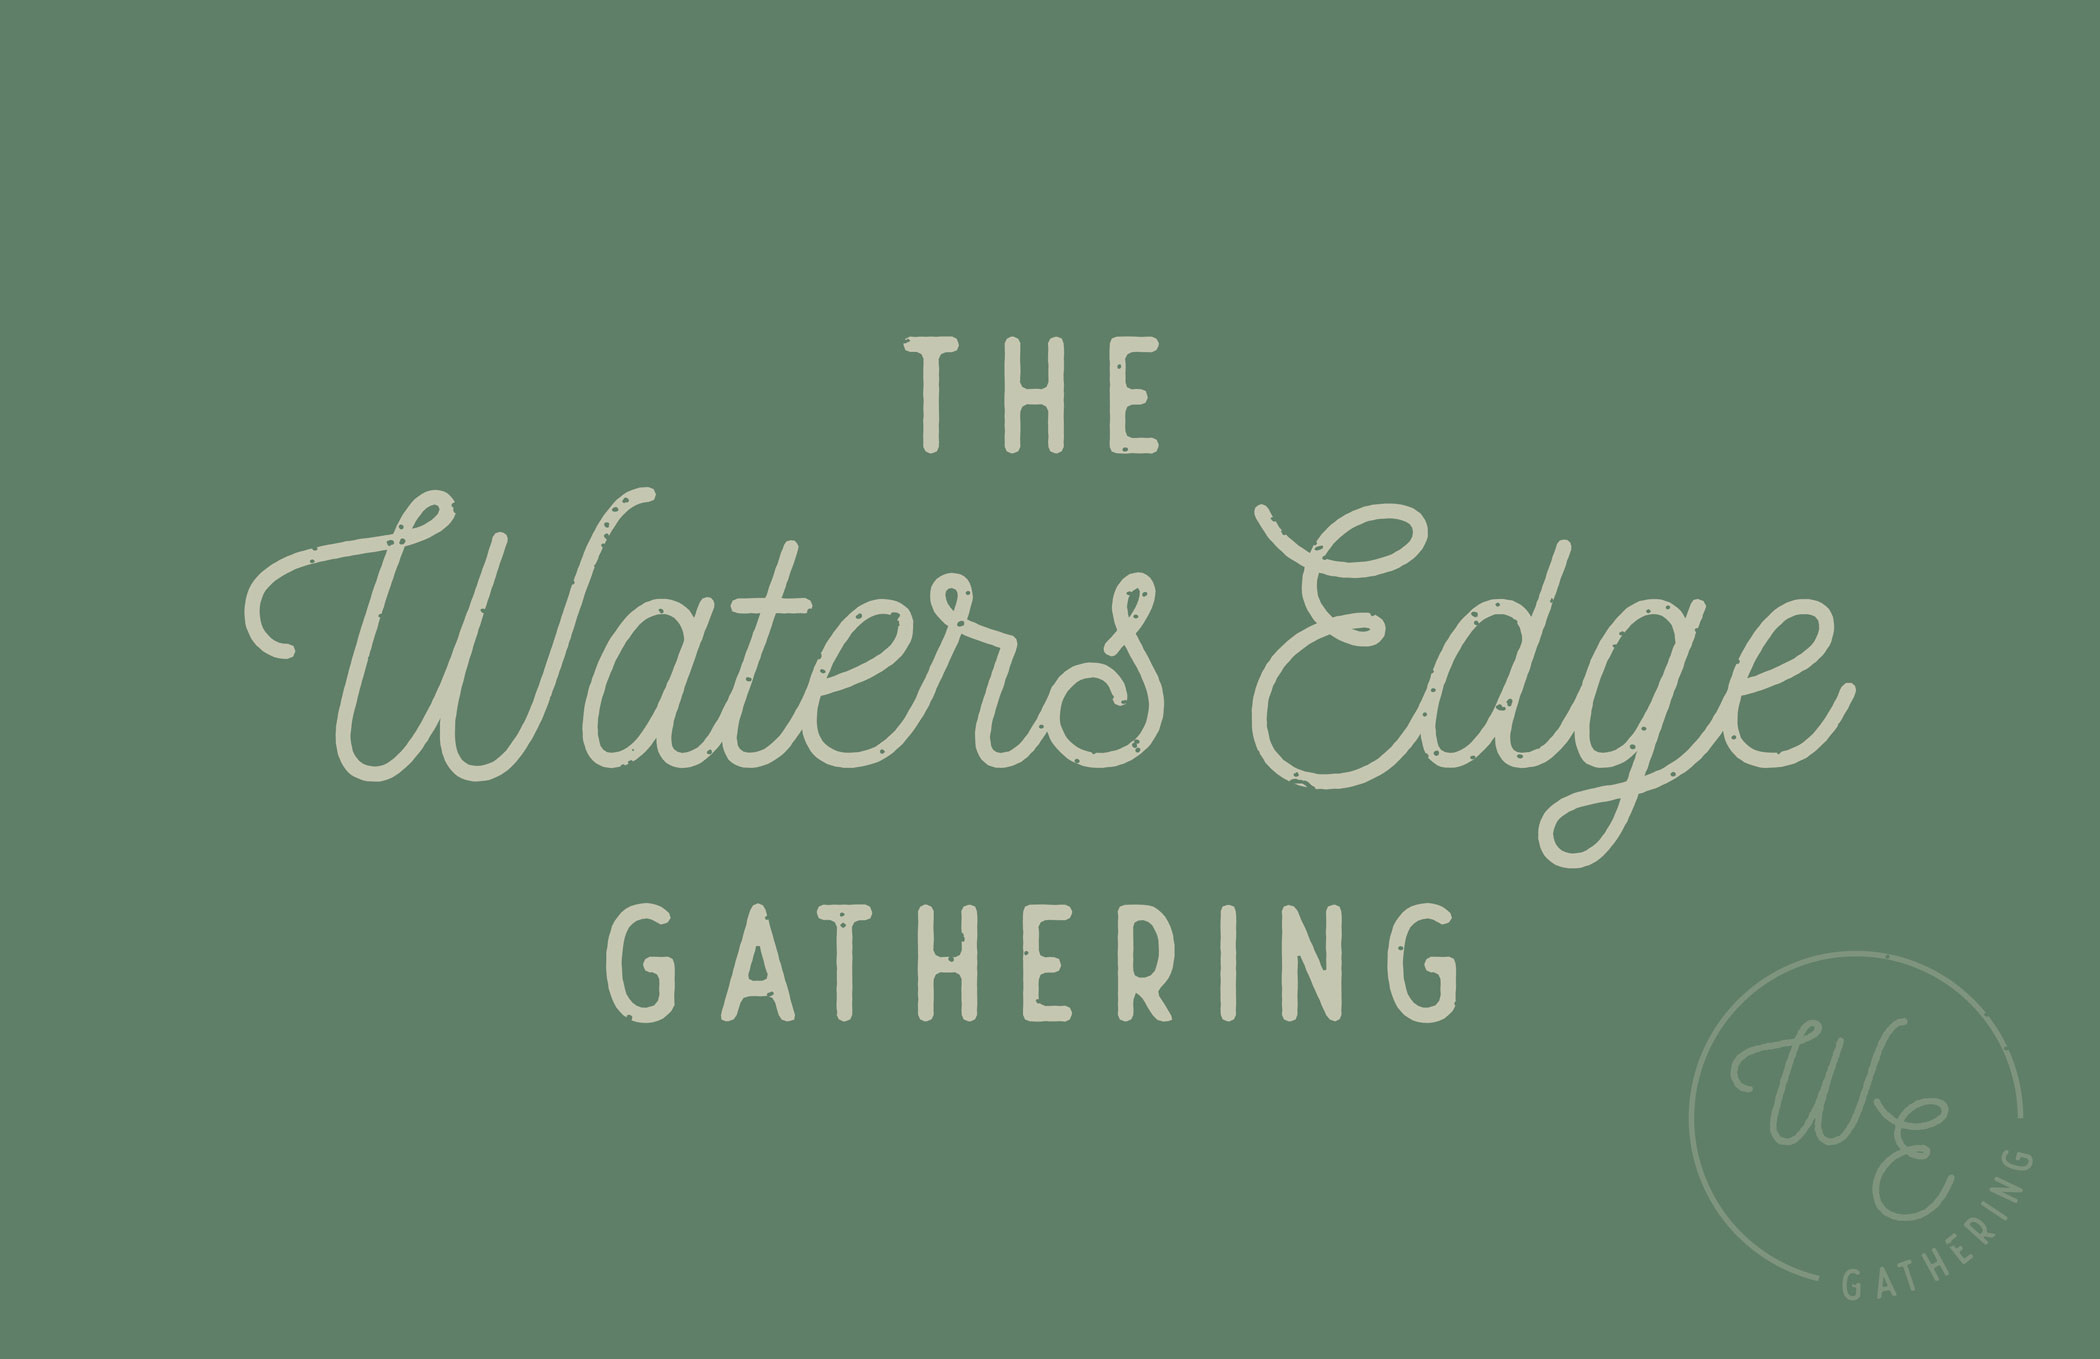 church logo design for waters edge gathering in Grand Rapids michigan